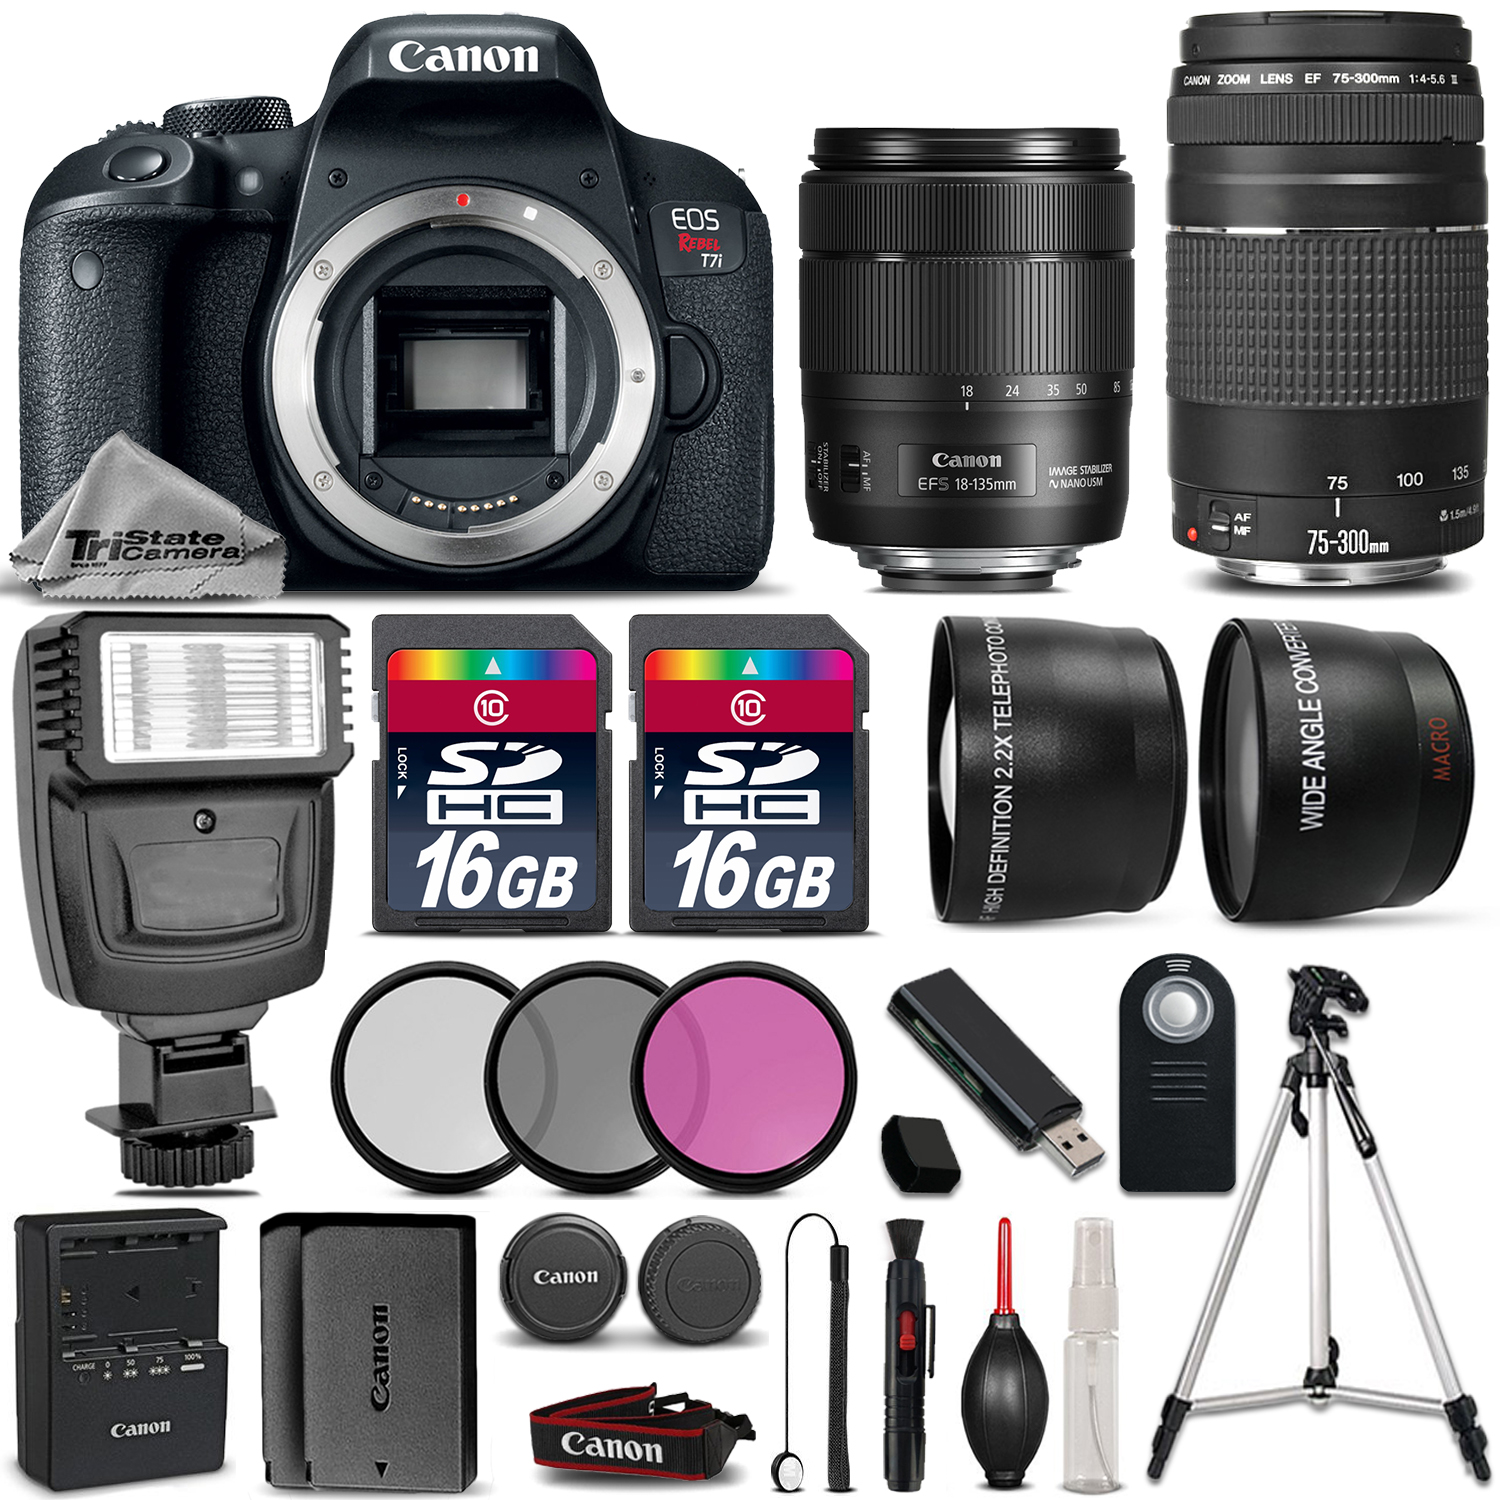 EOS Rebel T7i Camera + 18-135mm USM + 75-300mm III + 32GB + Flash +EXT BAT *FREE SHIPPING*